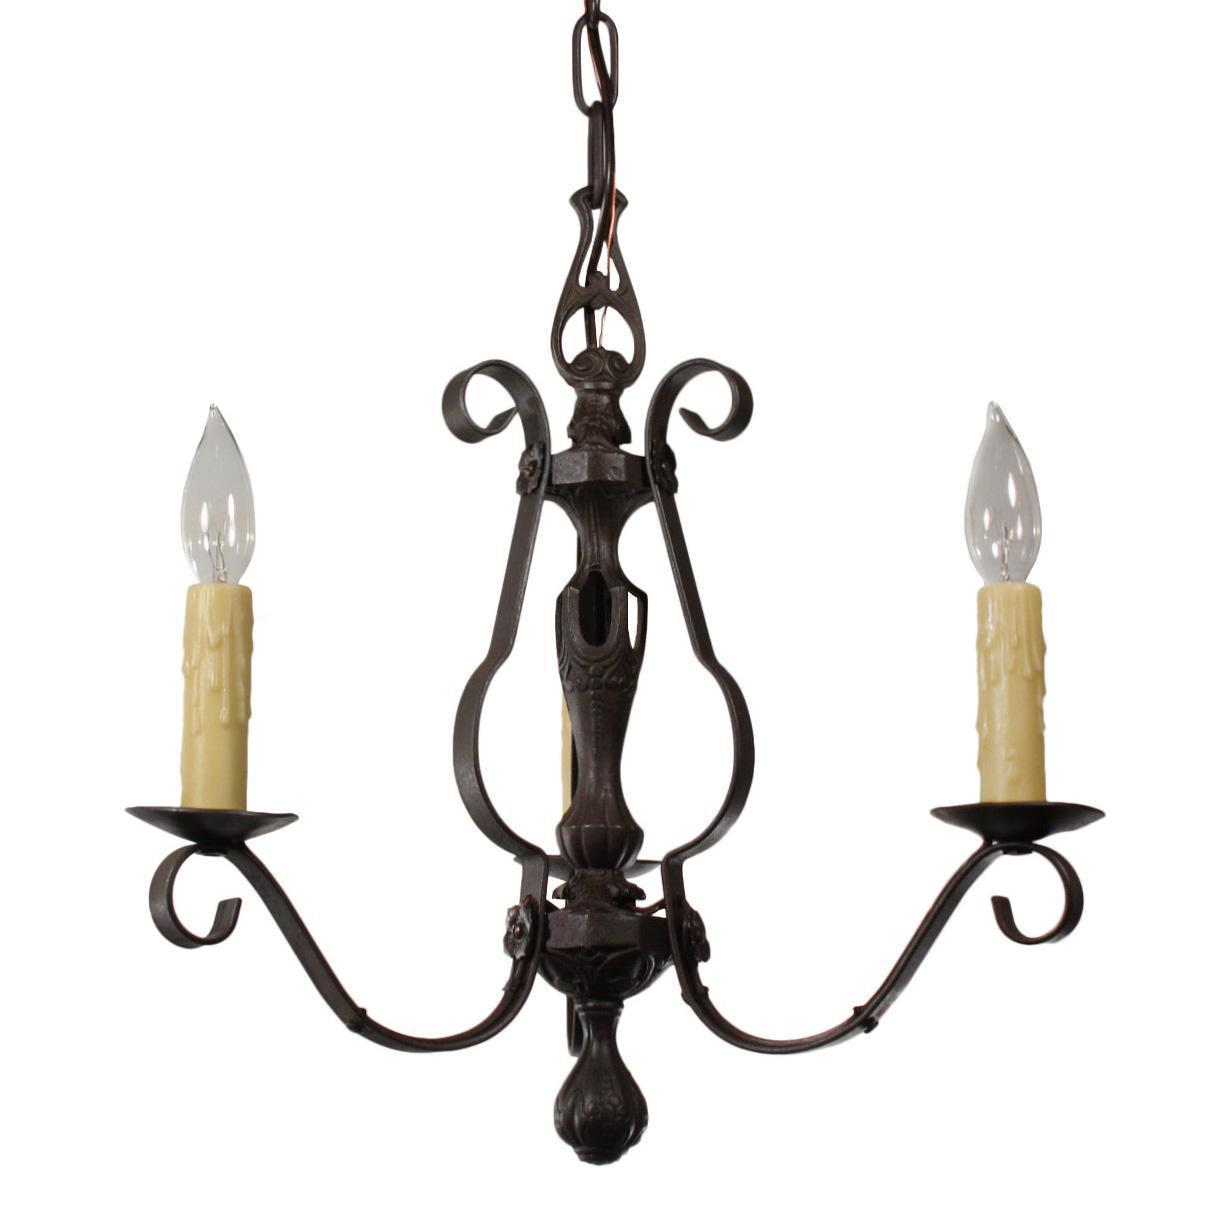 Charming Antique Iron Chandelier, c.1920s